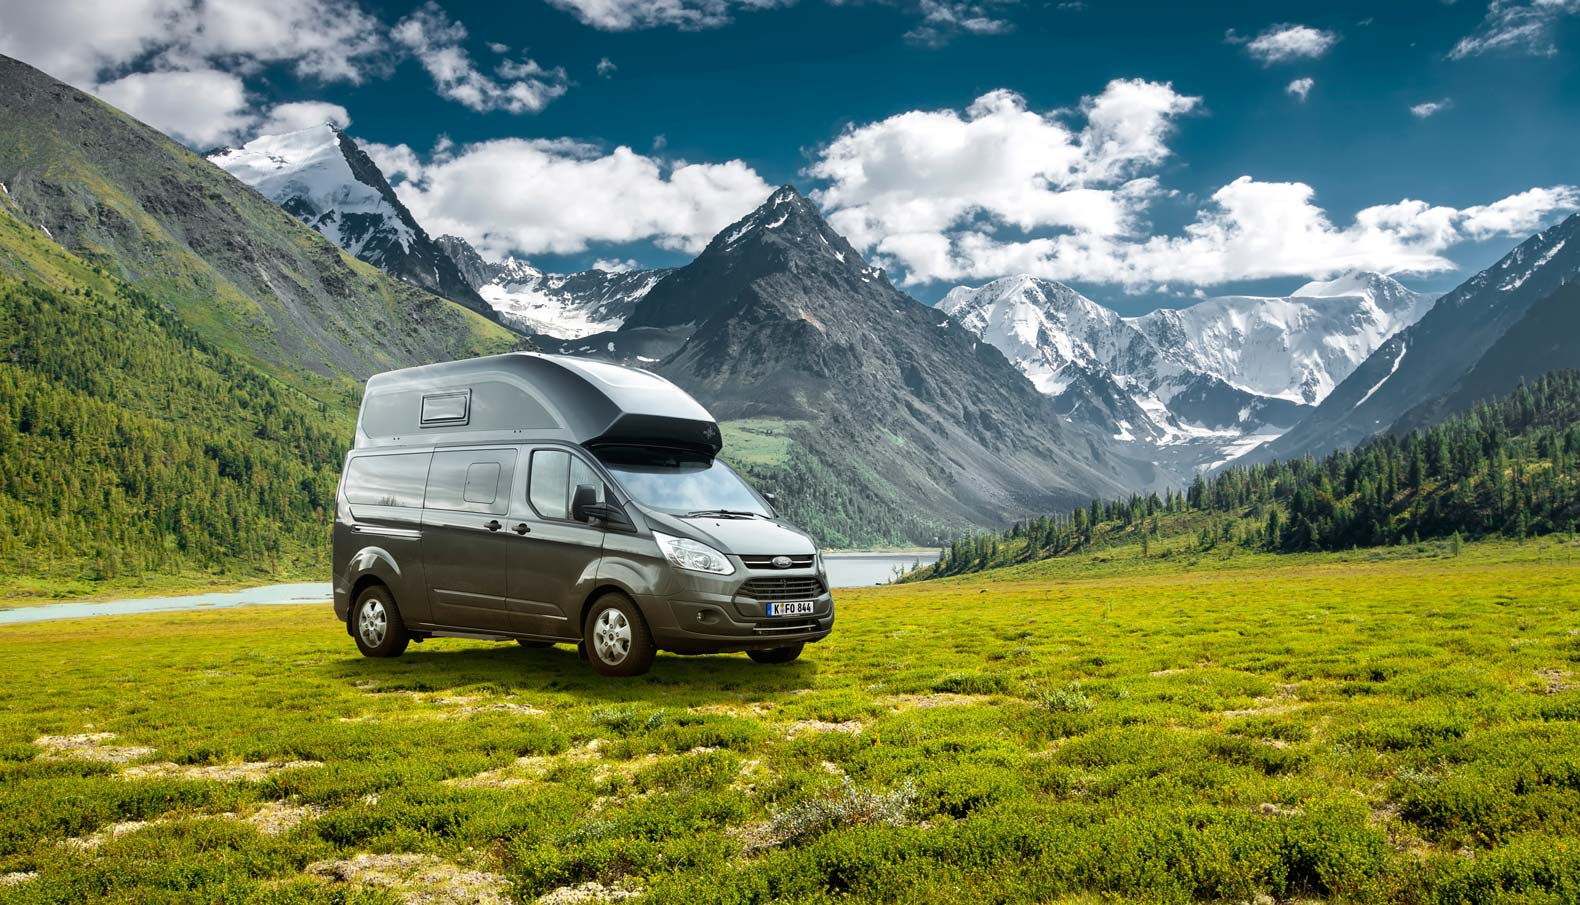 The Nugget Plus camper van has all the amenities you need for life on the road, including a toilet